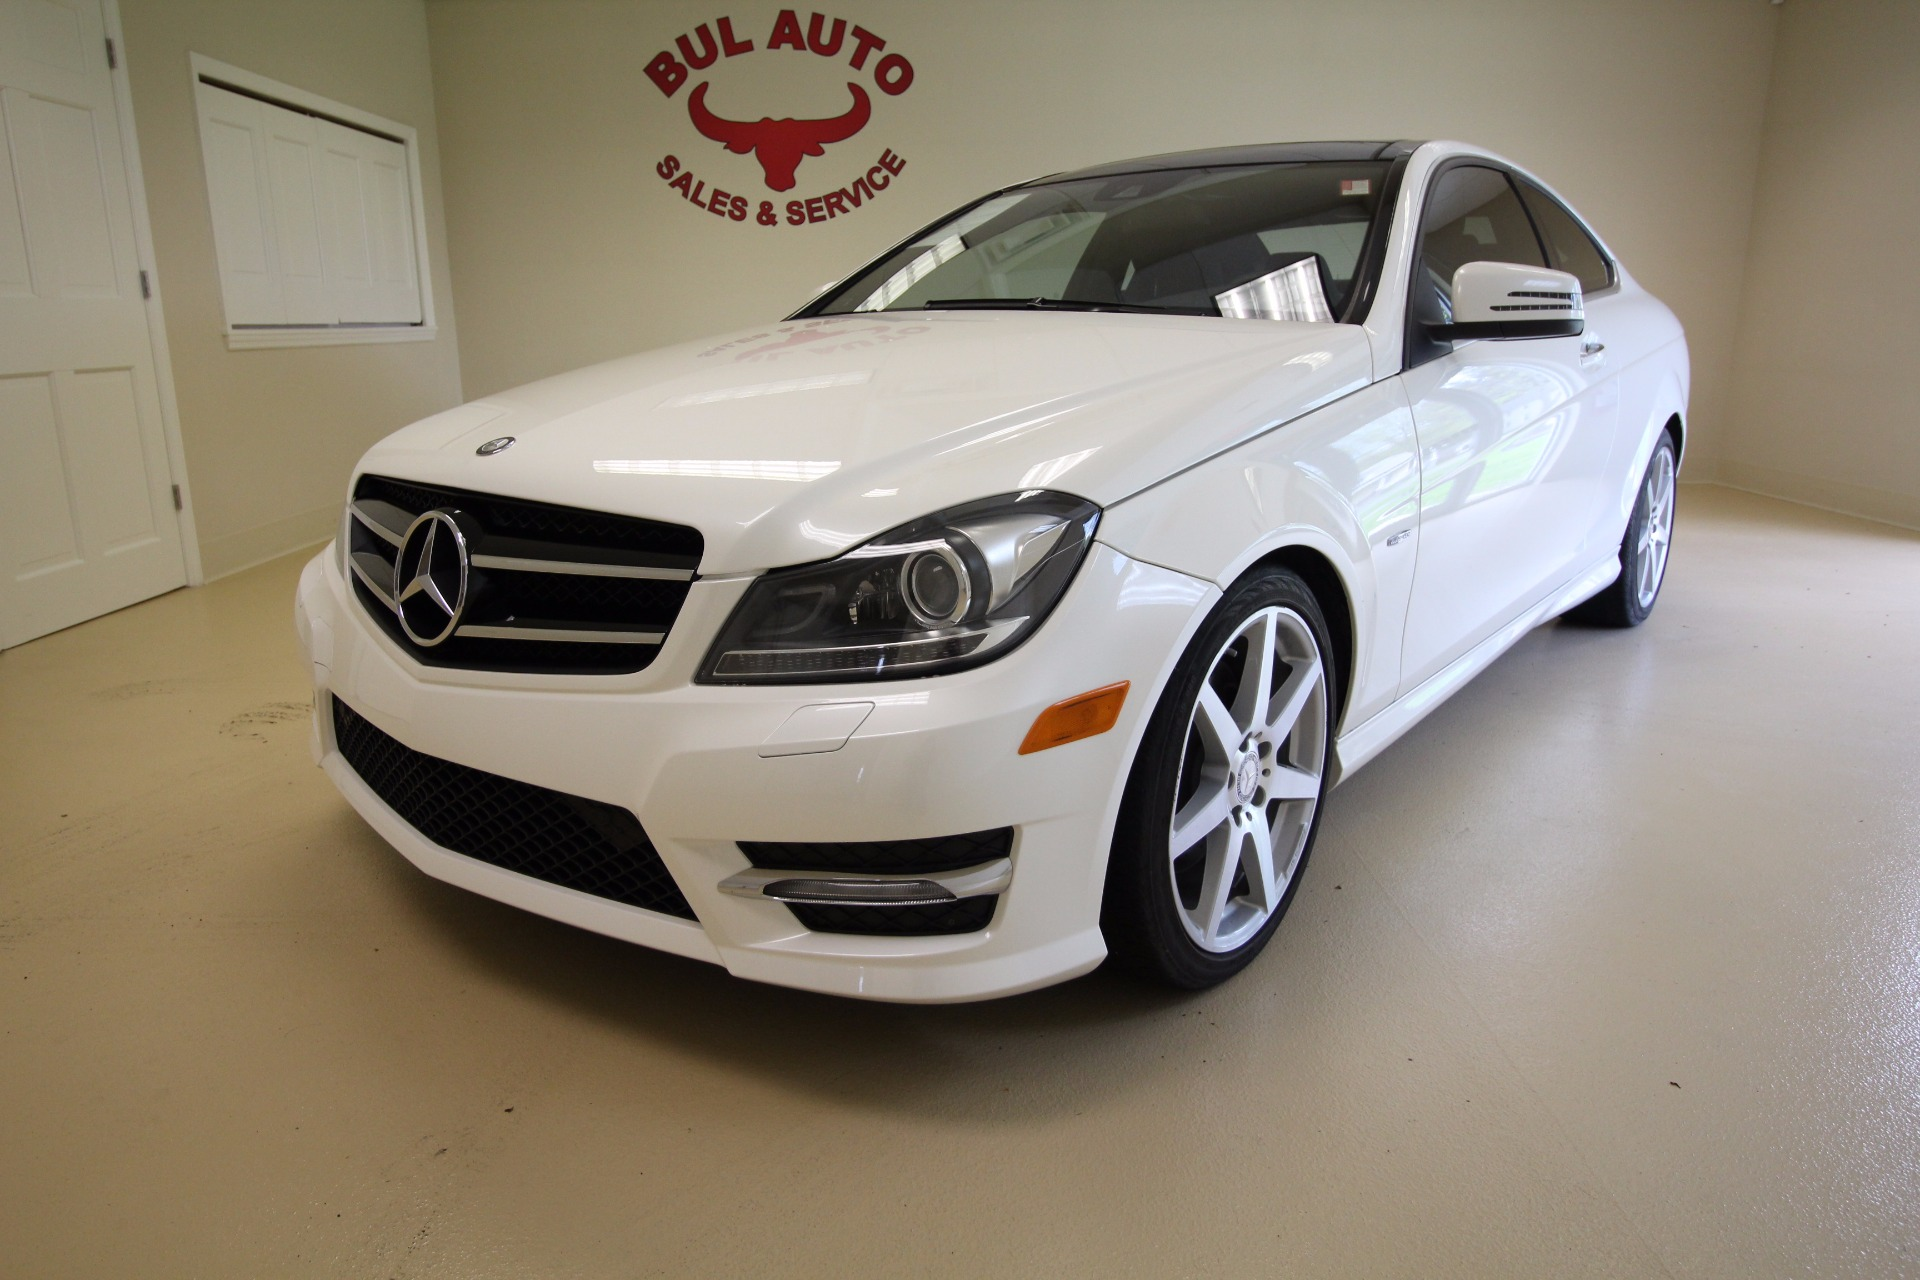 2012 mercedes benz c class c350 coupe 4matic stock 17088 for sale near albany ny ny. Black Bedroom Furniture Sets. Home Design Ideas